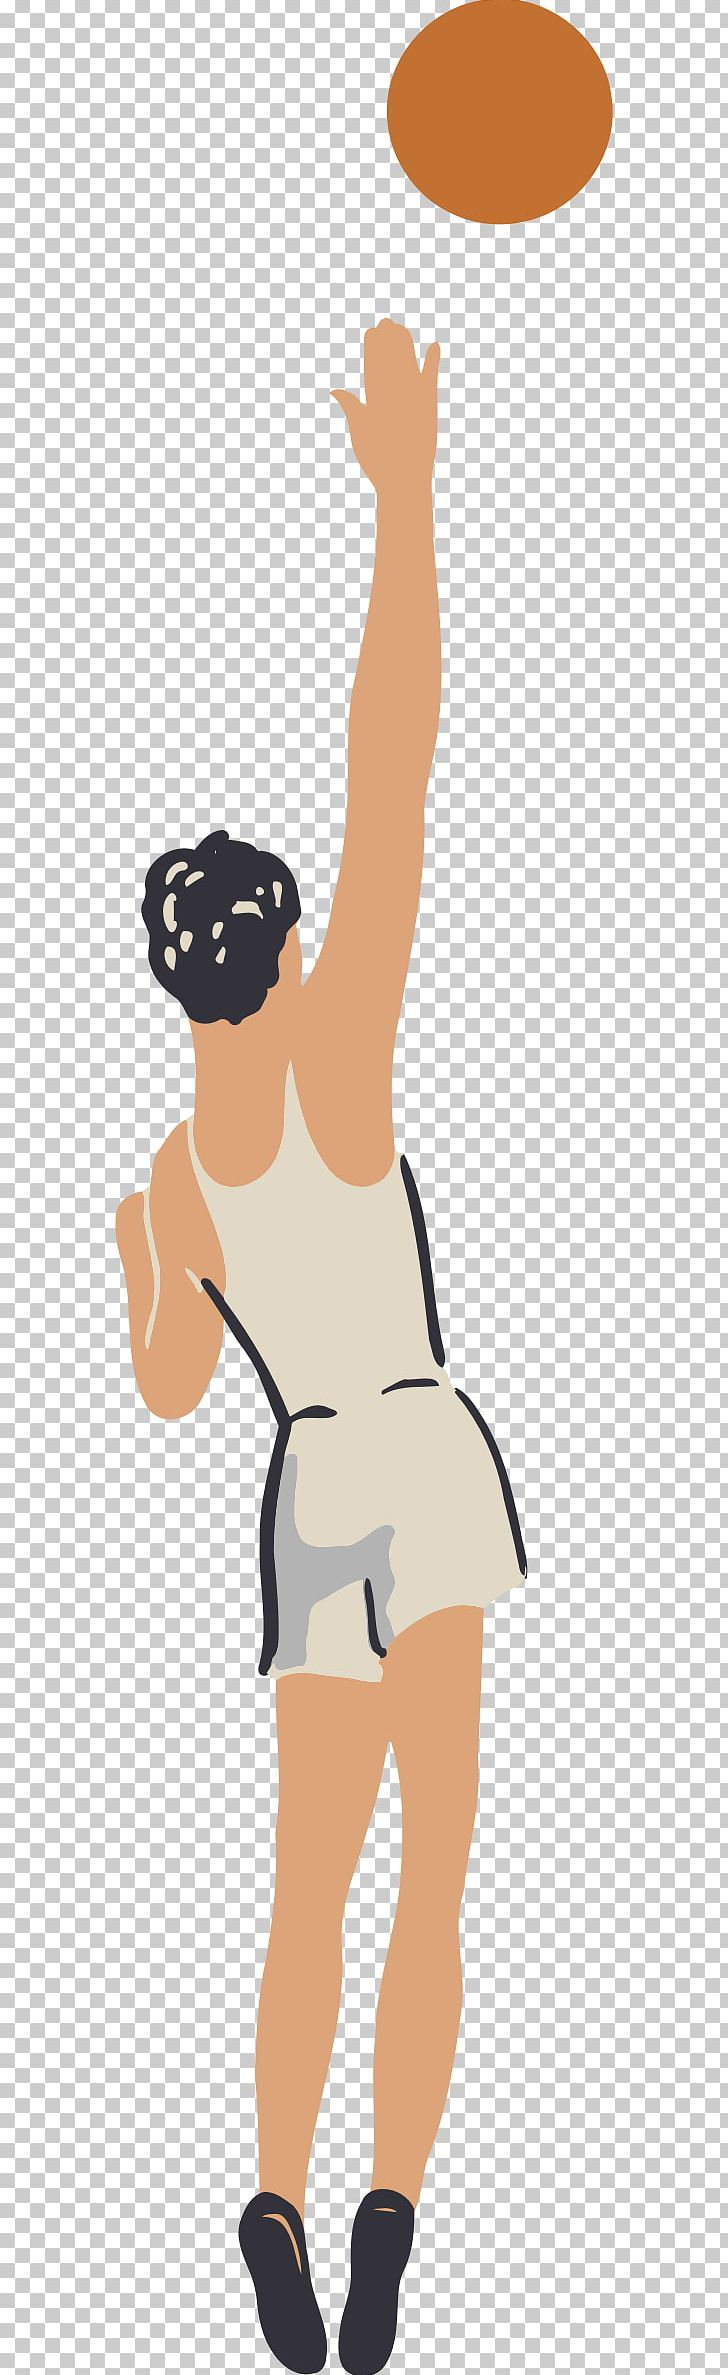 Basketball Player Basketball Court PNG, Clipart, Arm, Art, Ball, Basketball, Basketball Court Free PNG Download